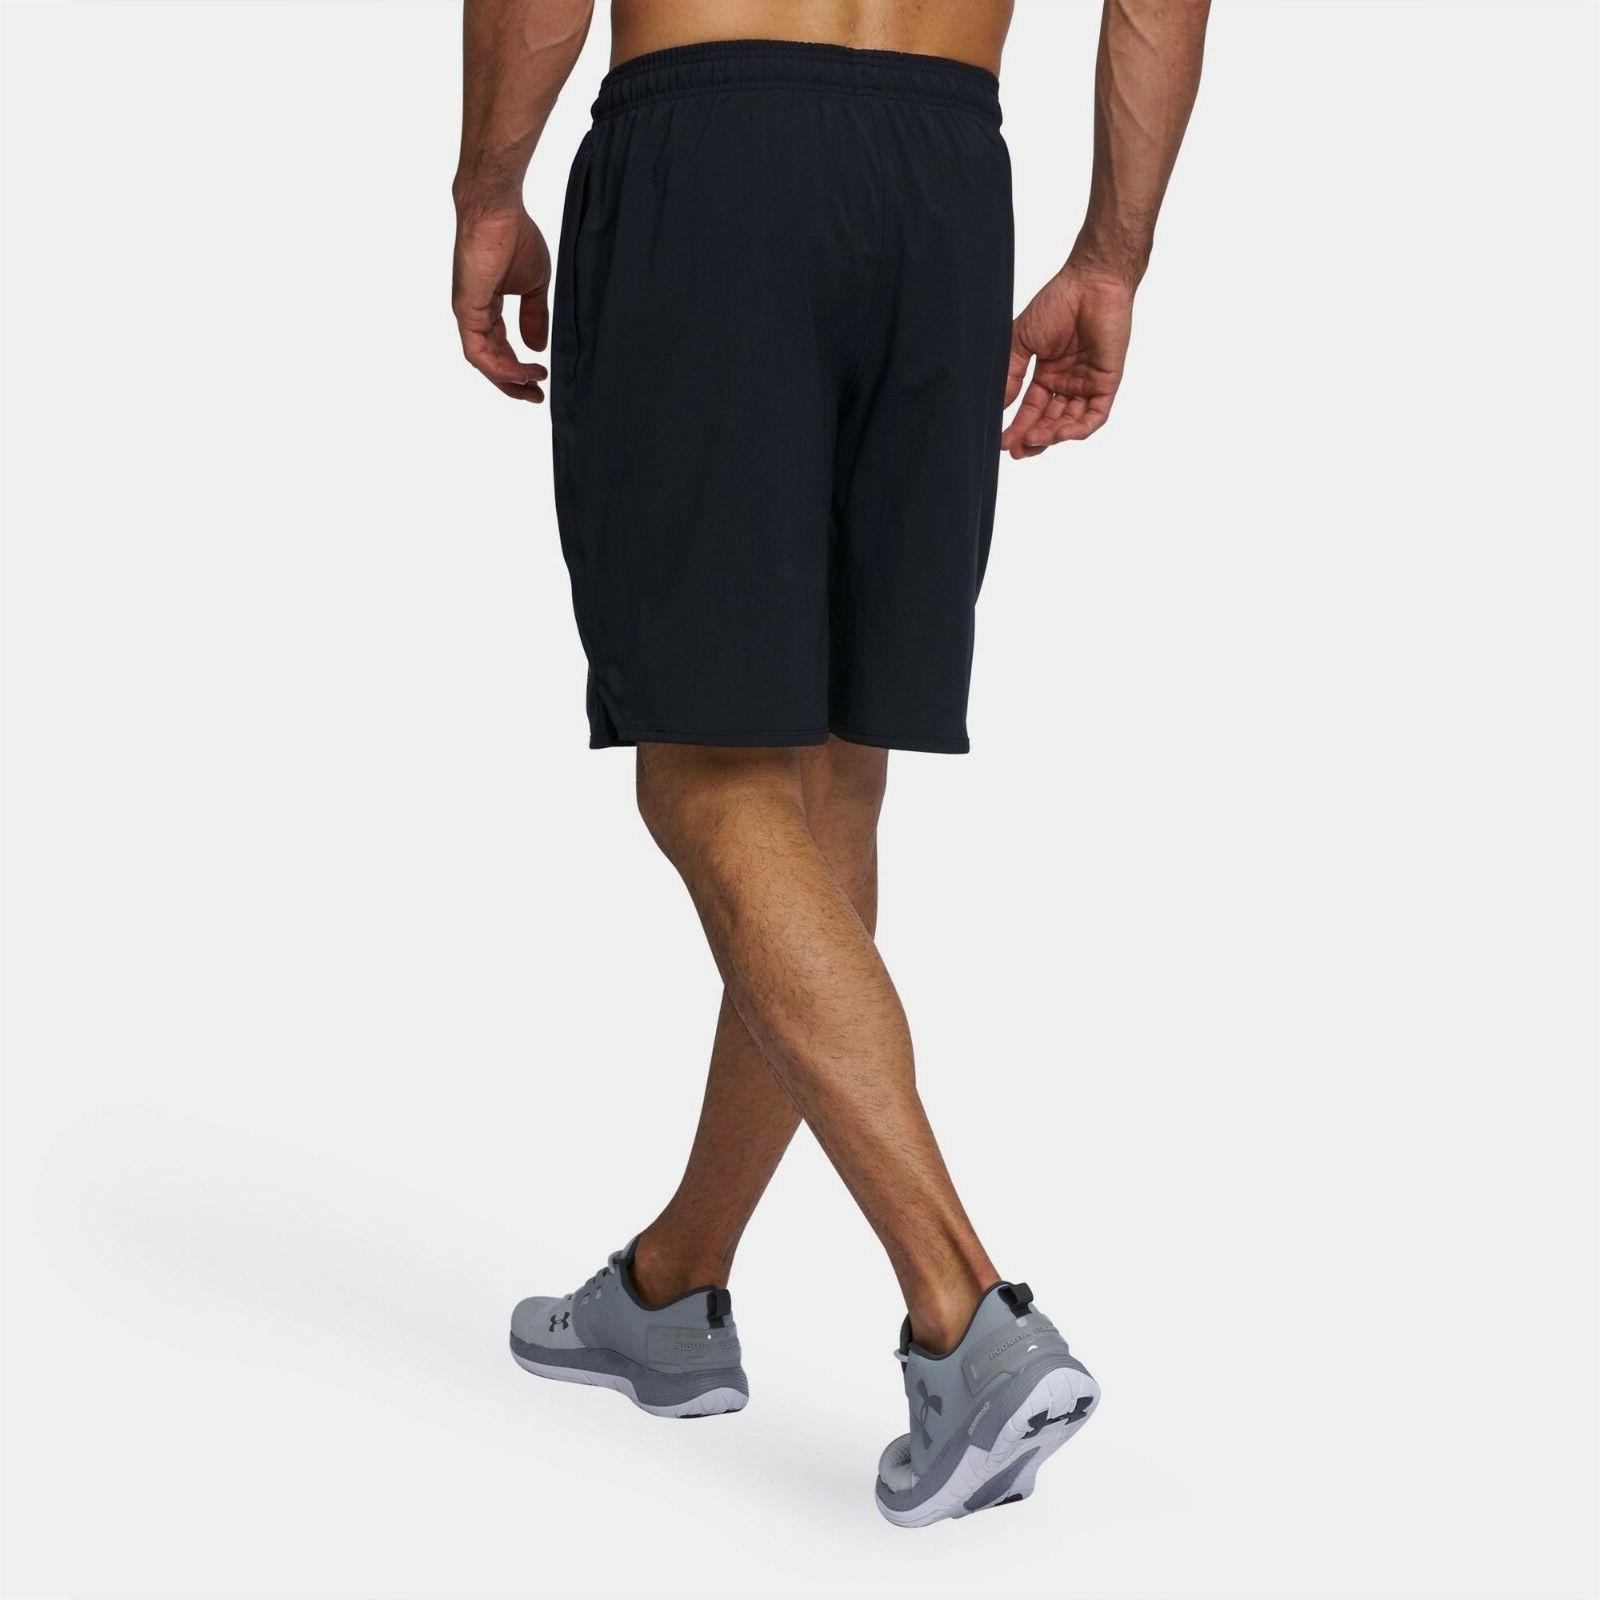 Champion Men's Short with Pockets